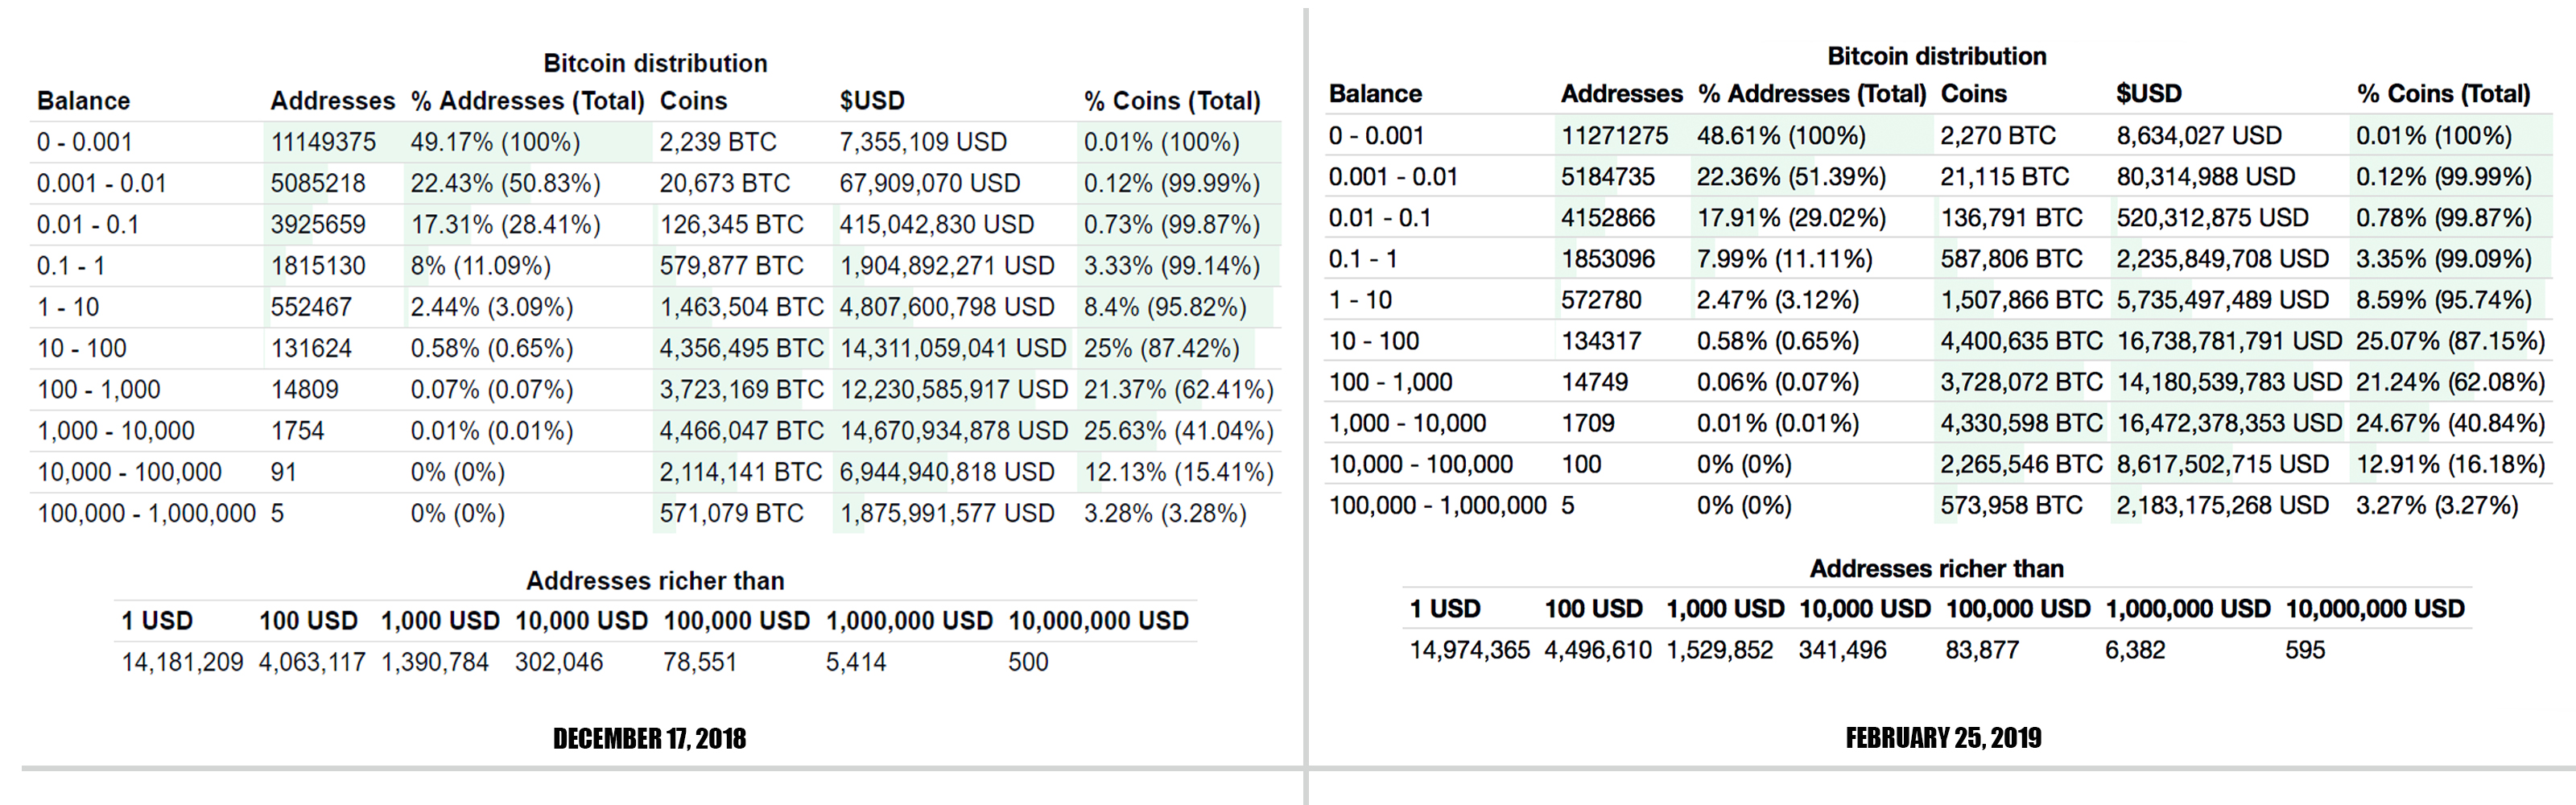 Bitcoin Whales Have Accumulated Thousands of Coins in the Last 2 Months